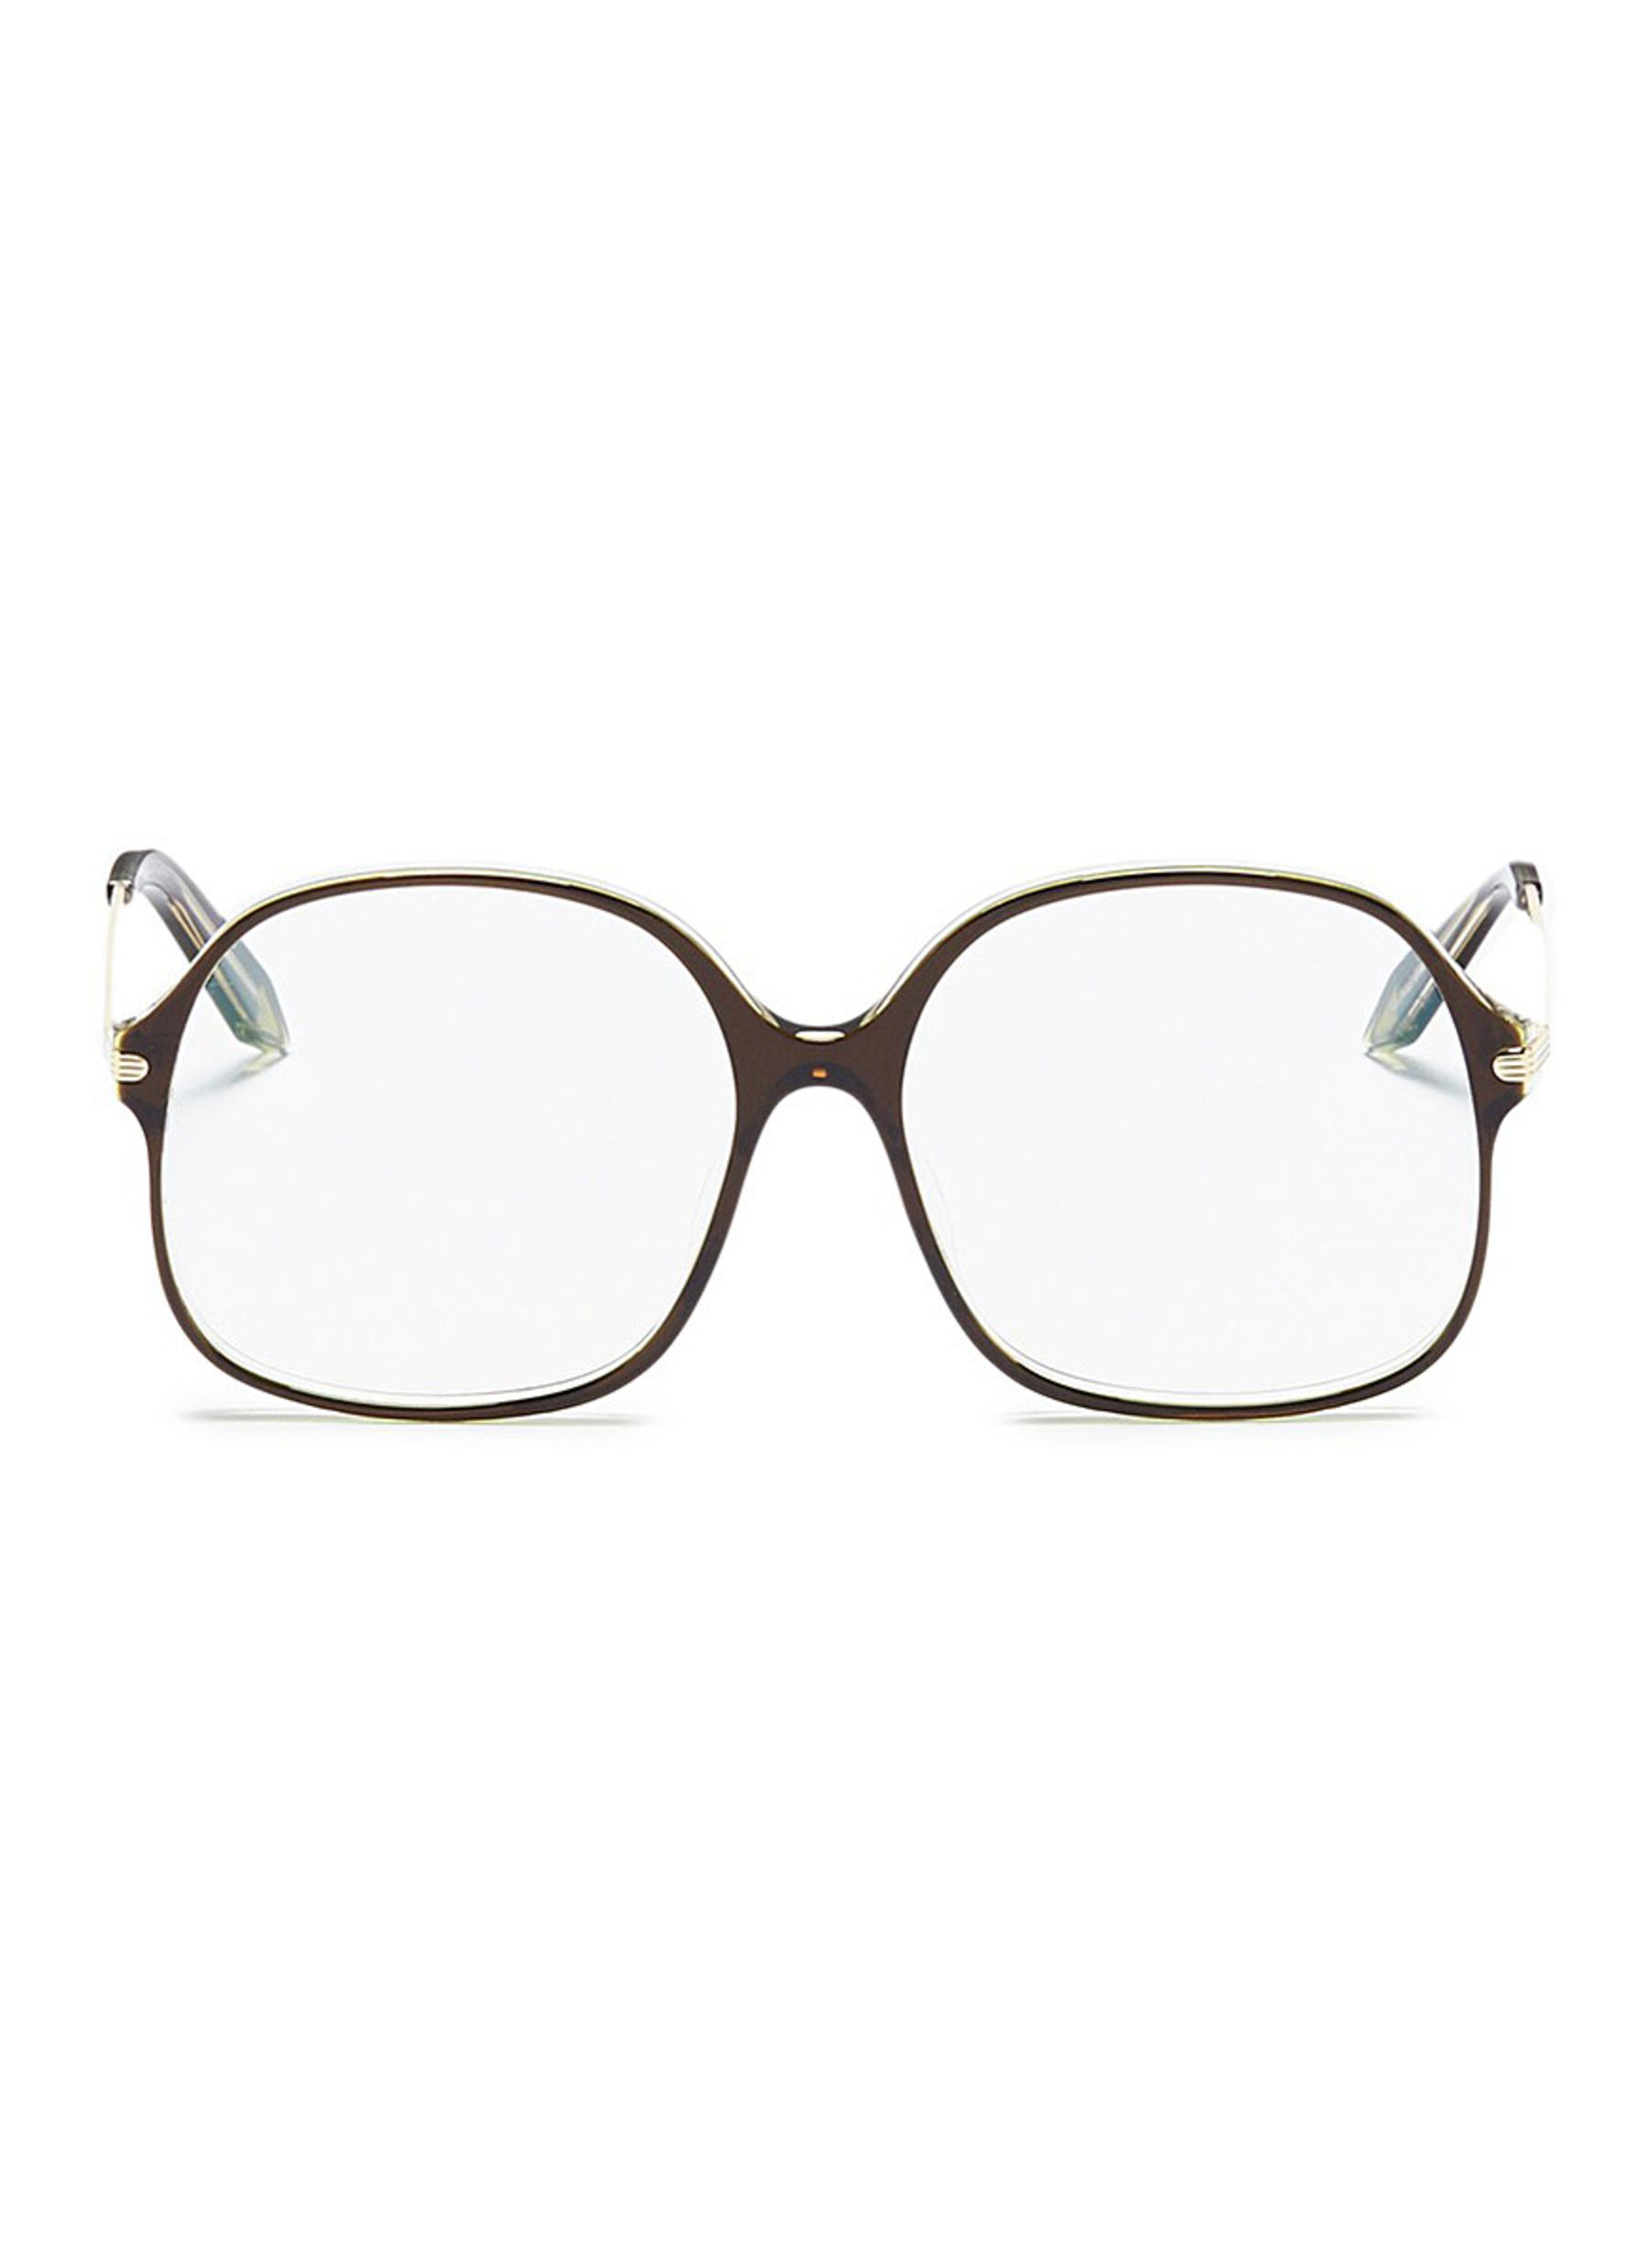 660713f09237 Lyst - Victoria Beckham Acetate Square Optical Glasses in Green